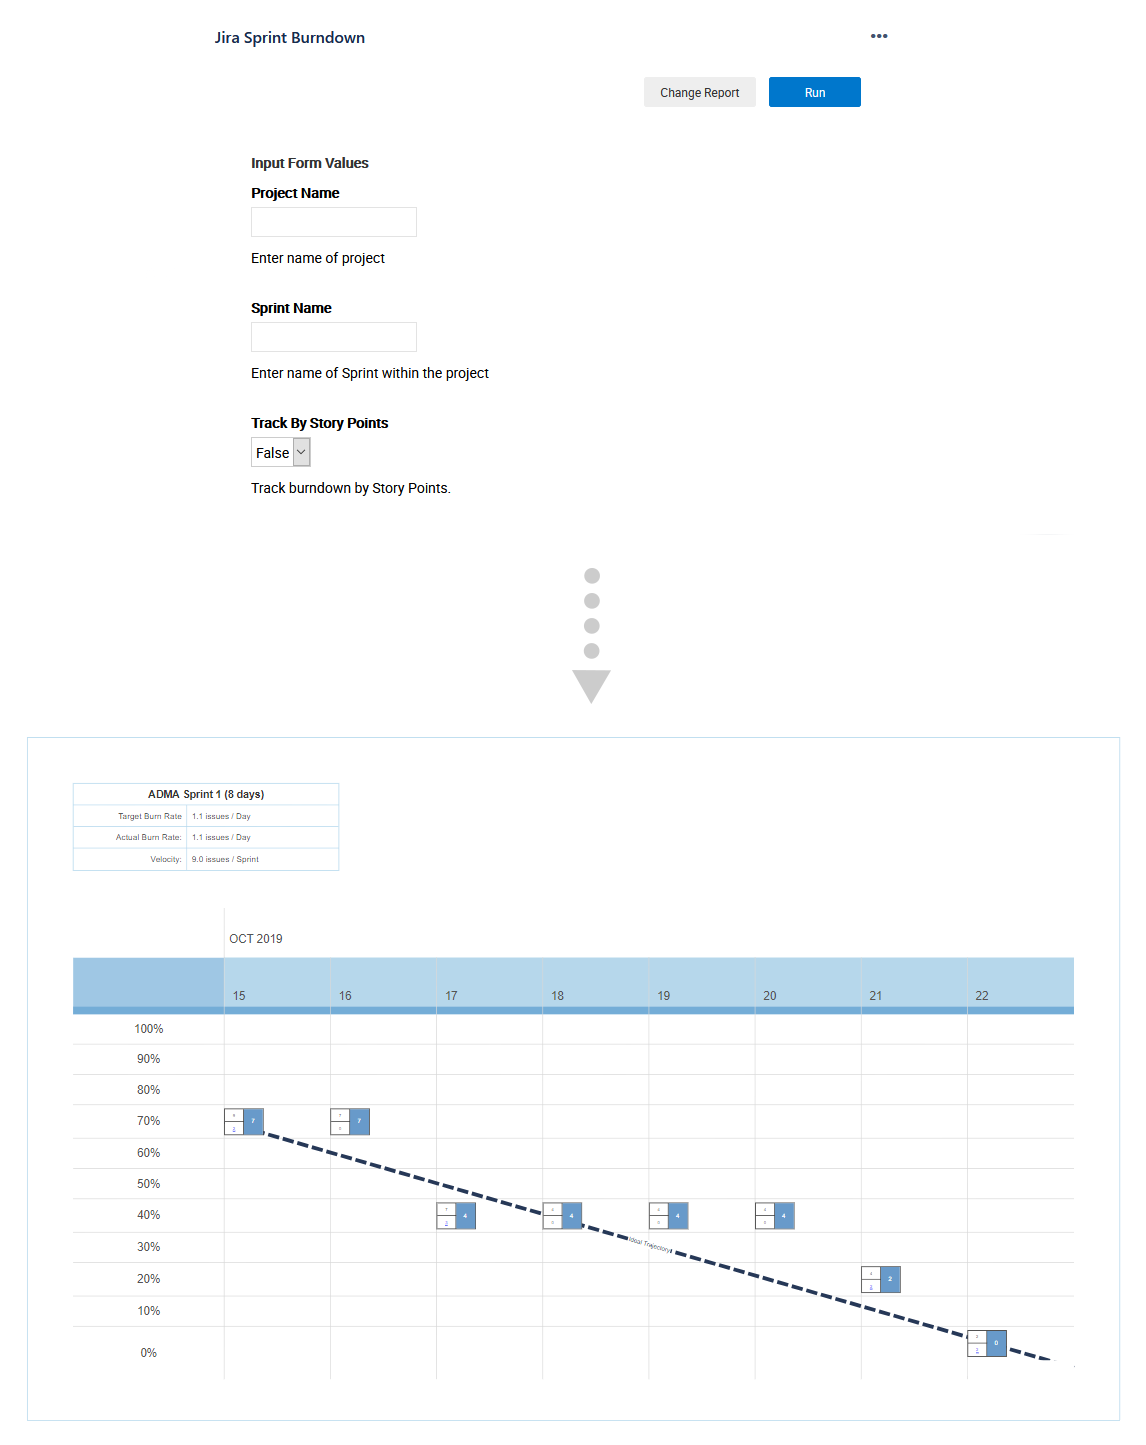 VisualScript burndown chart using parameters